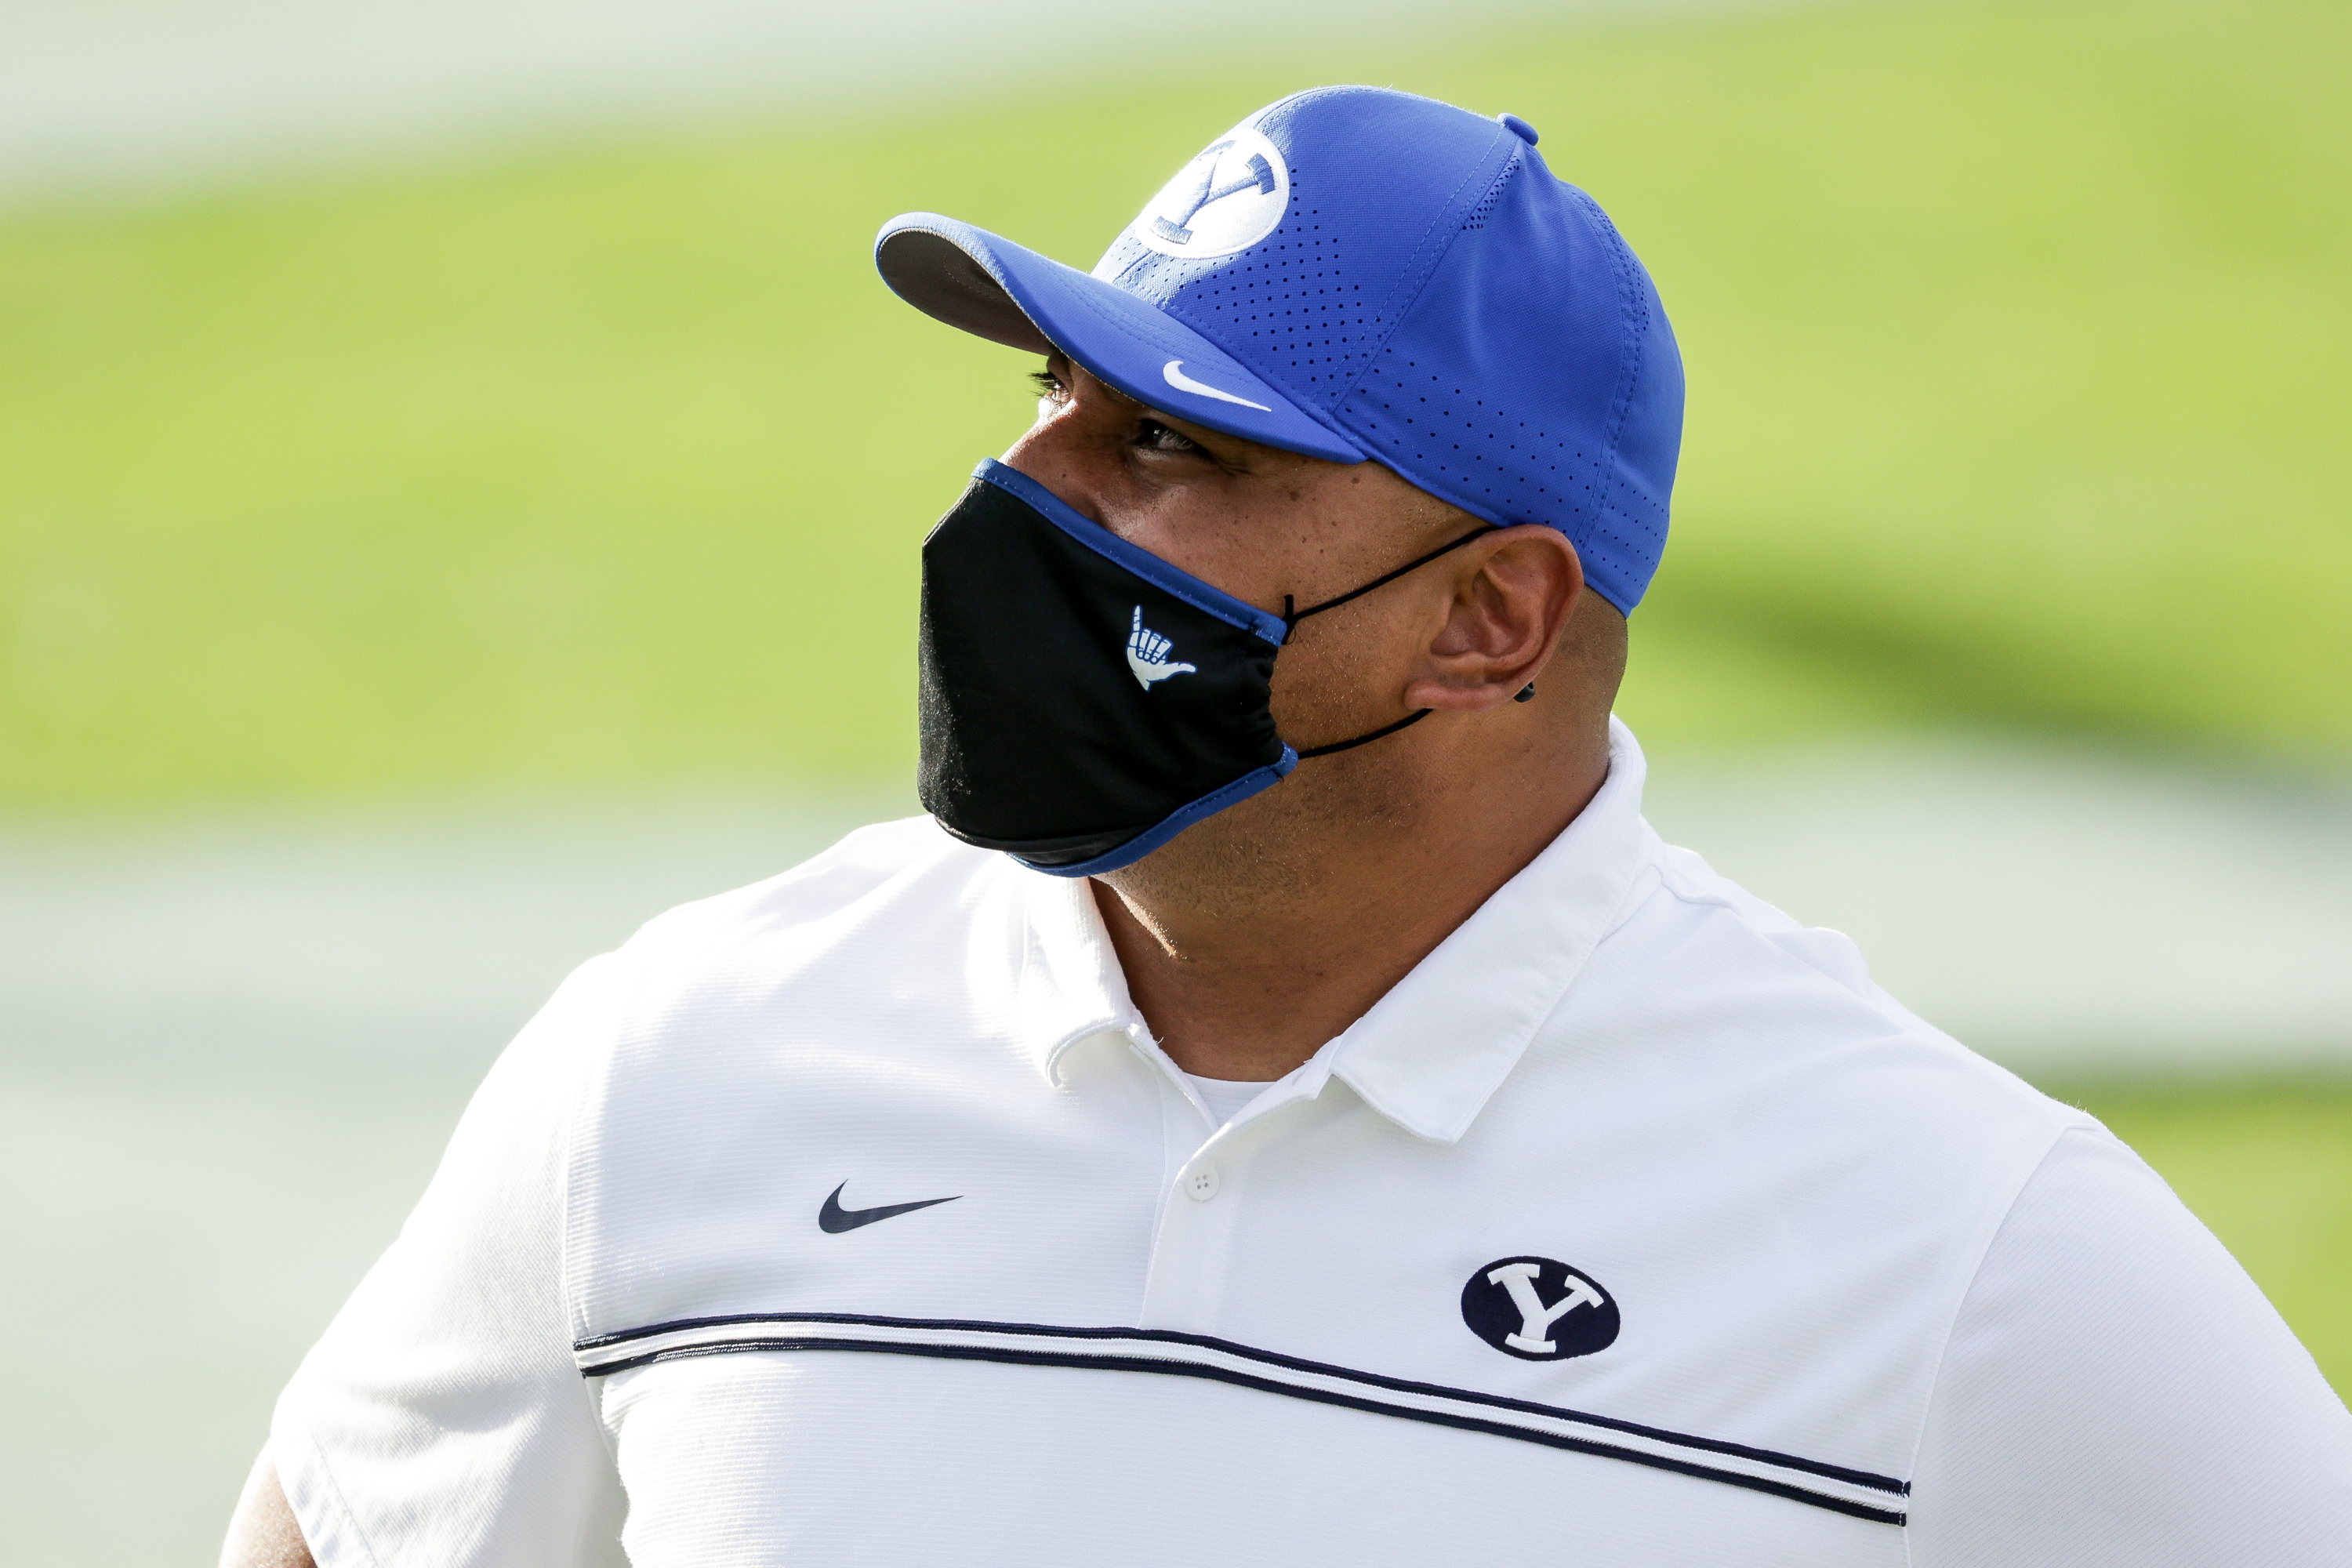 Brigham Young Cougars head coach Kalani Sitake comes off the field after his team's 27-20 win over the UTSA Roadrunners at LaVell Edwards Stadium in Provo on Saturday, Oct. 10, 2020.